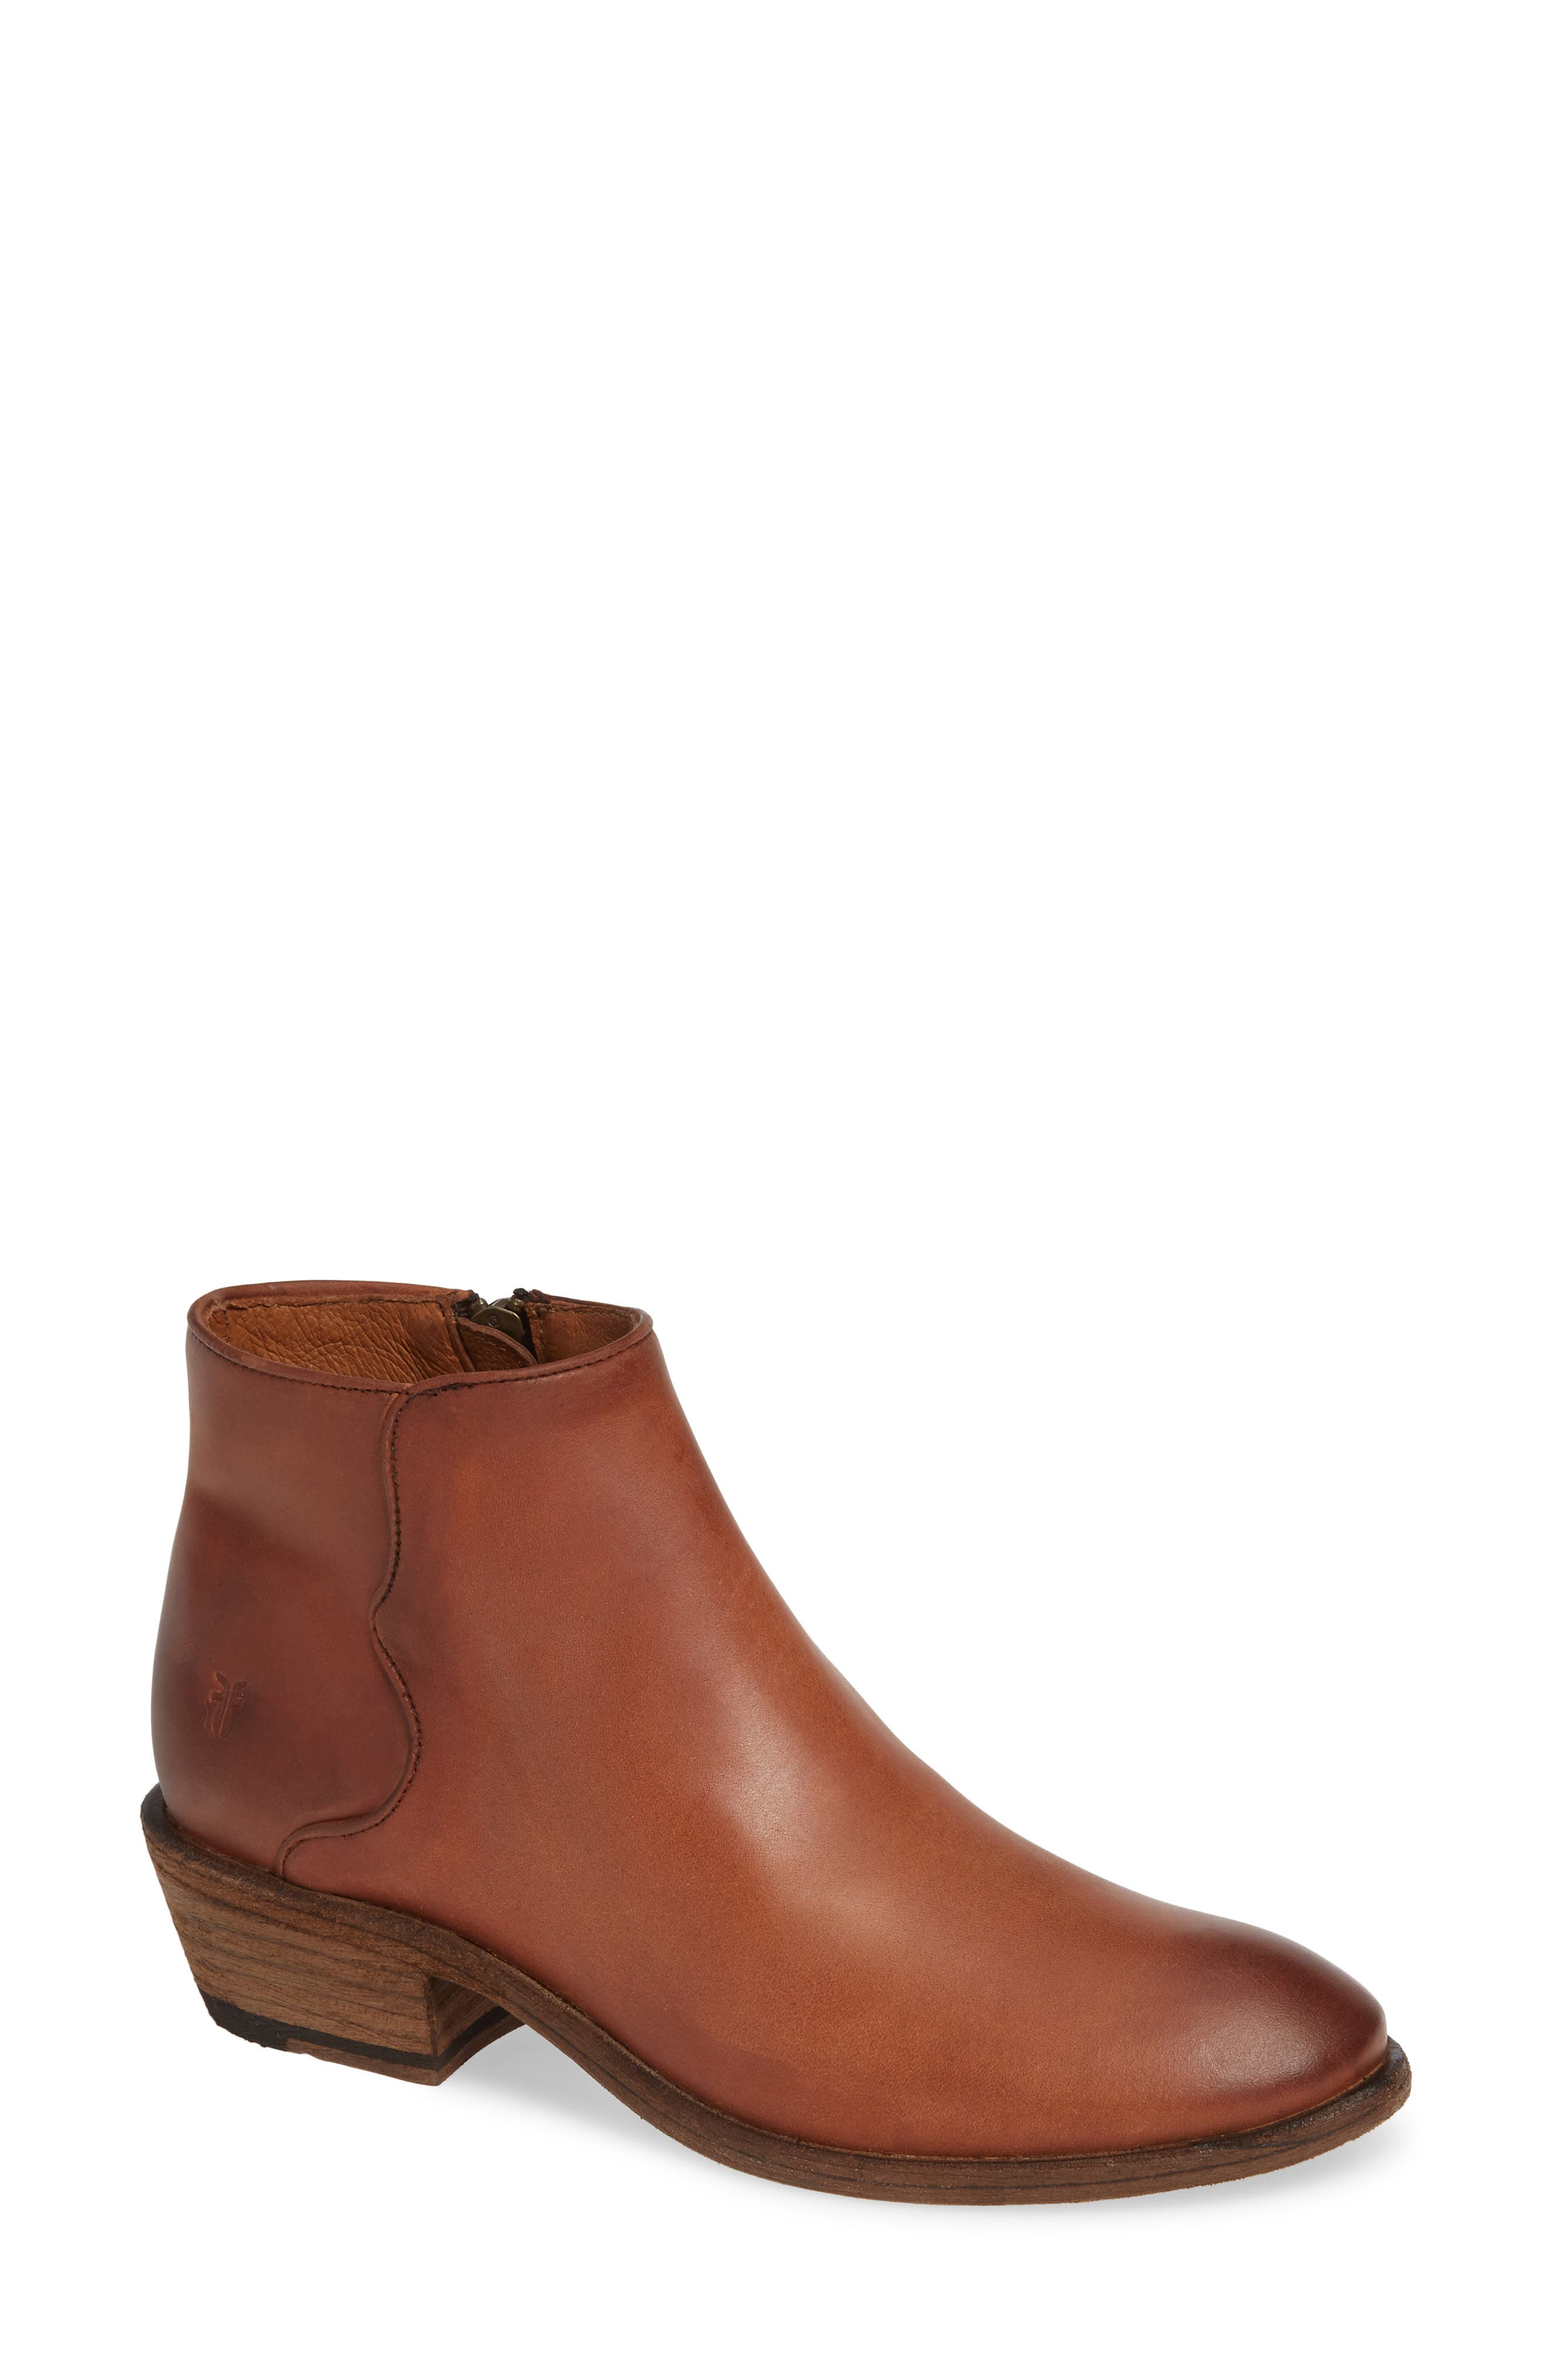 Carson Piping Bootie in Cognac